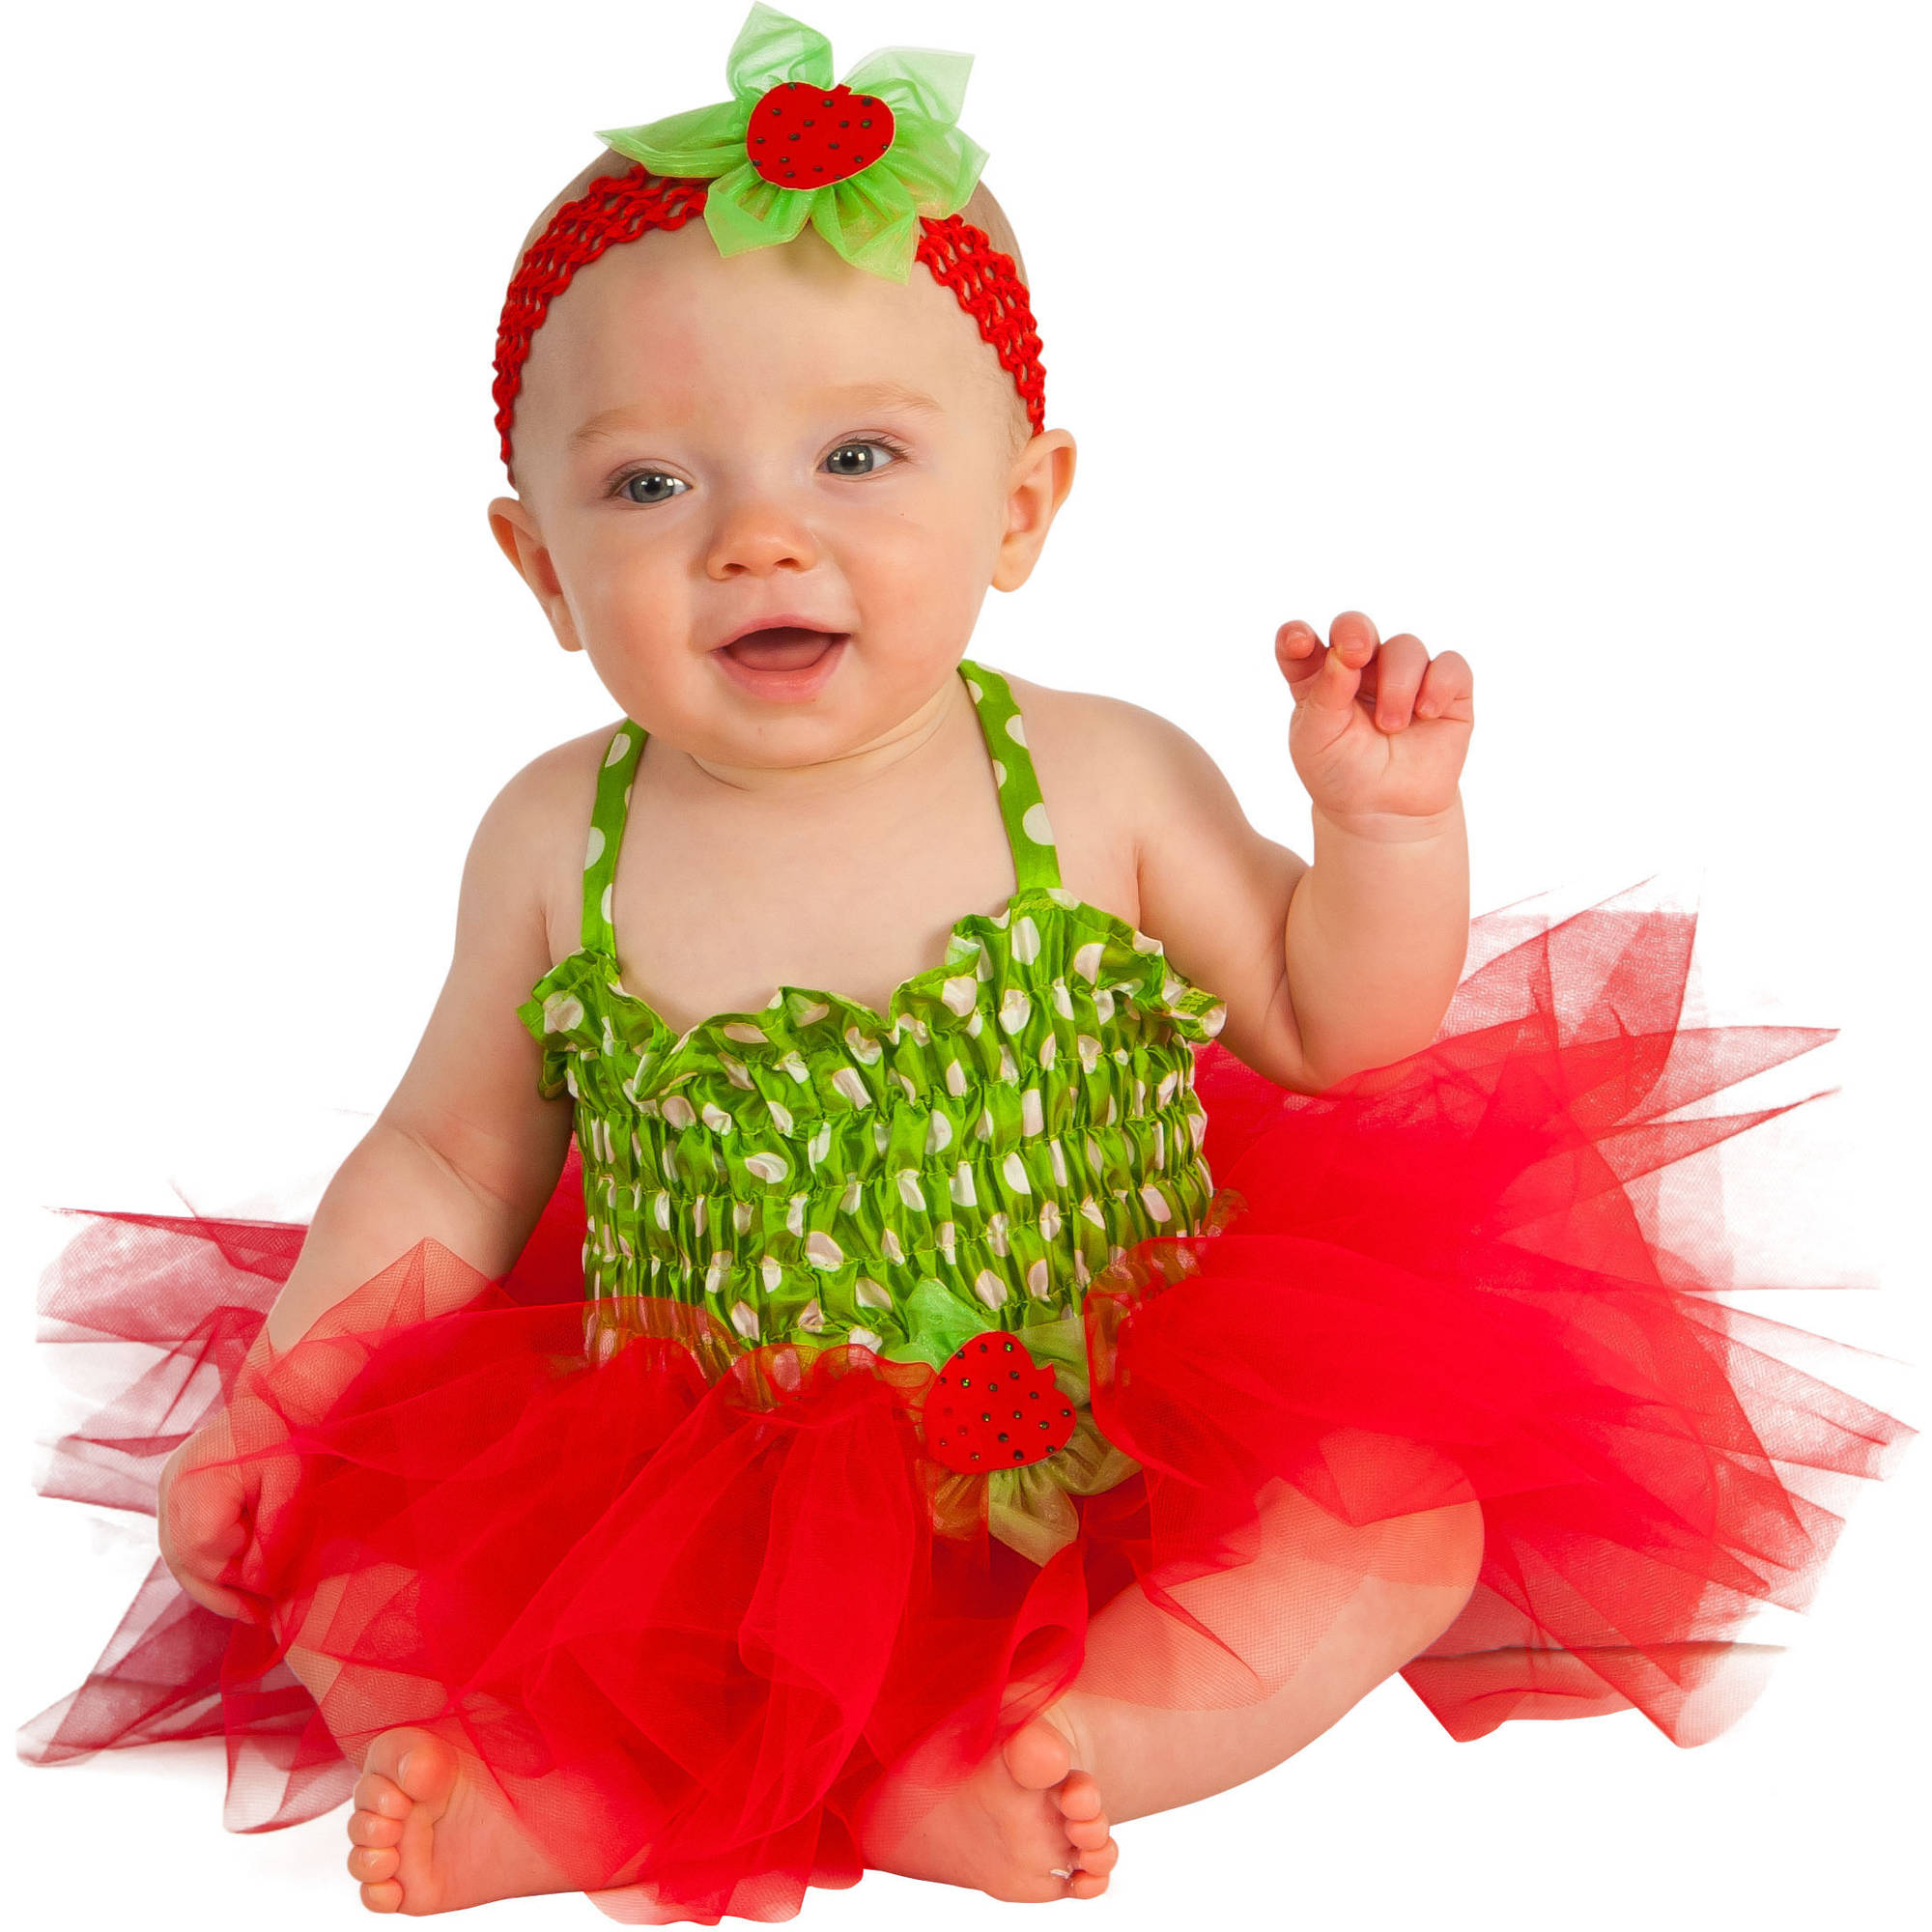 Strawberry Infant Tutu Dress Halloween Costume Walmart